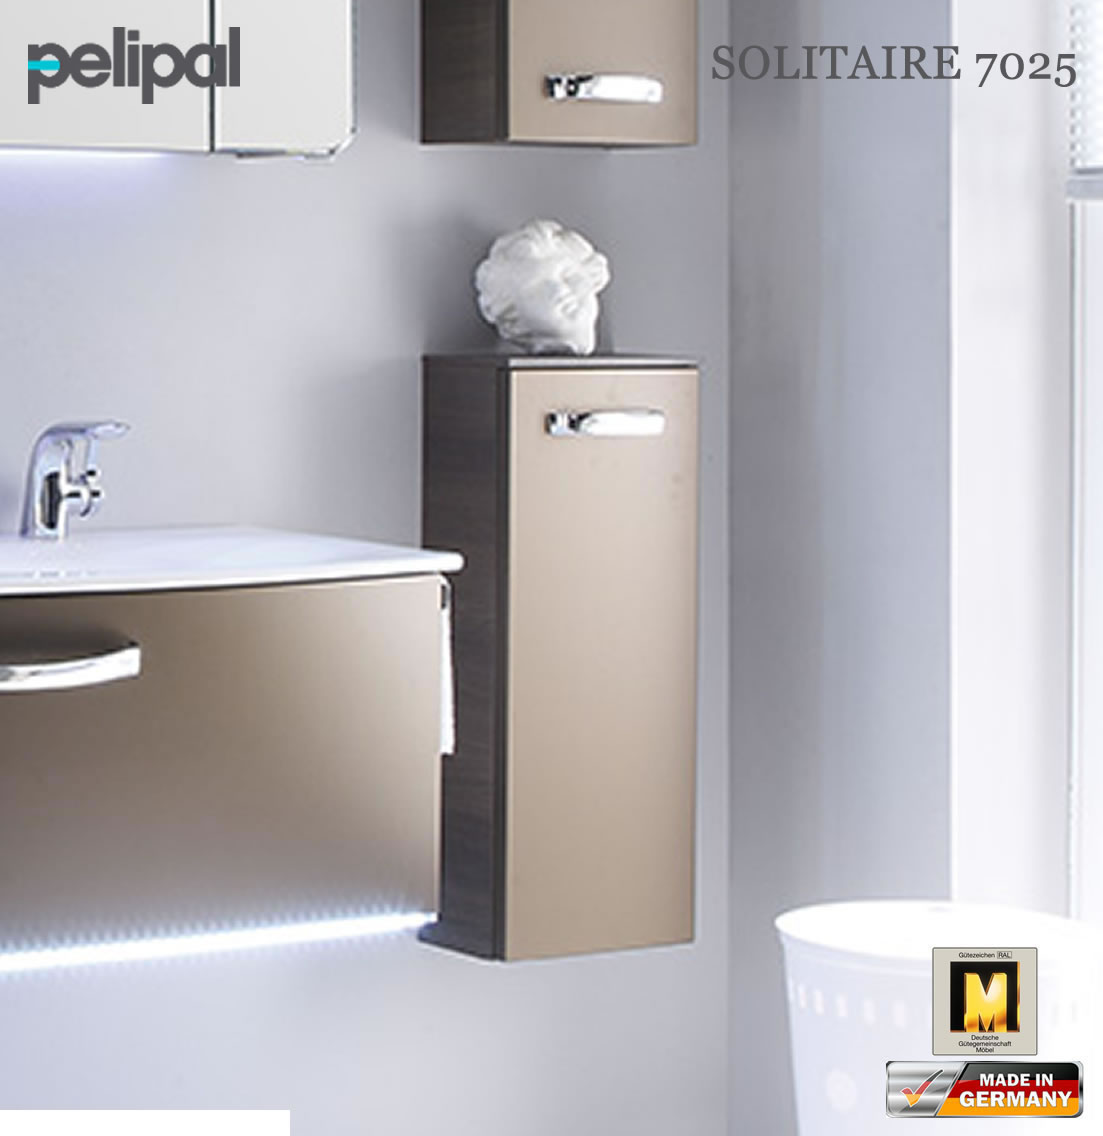 pelipal solitaire 7025 highboard 73 cm 7025 hb 30 01 impuls home. Black Bedroom Furniture Sets. Home Design Ideas